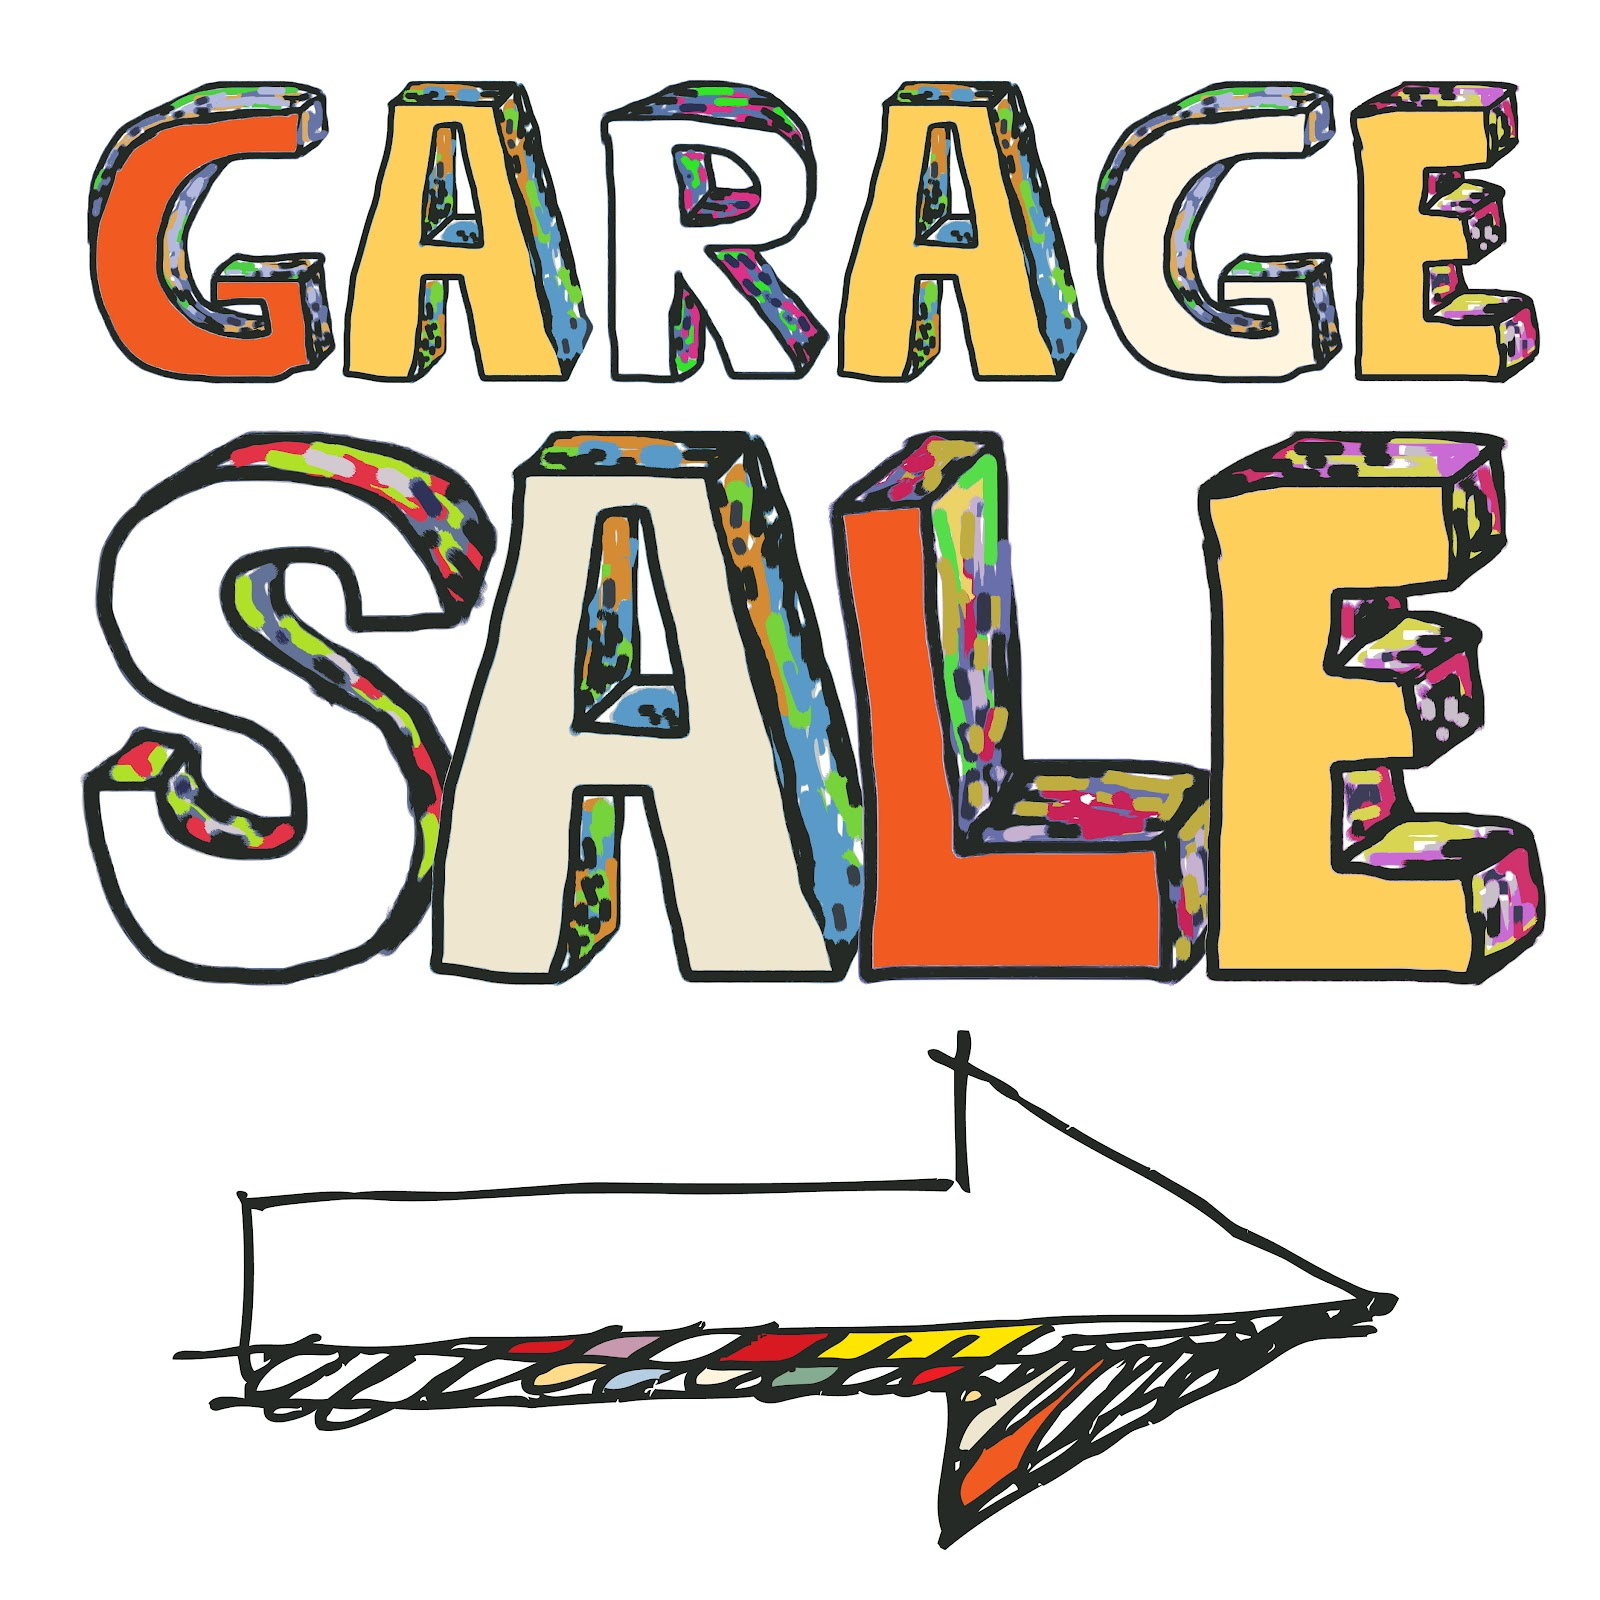 1600x1600 Garage Sale Clip Art Many Interesting Cliparts